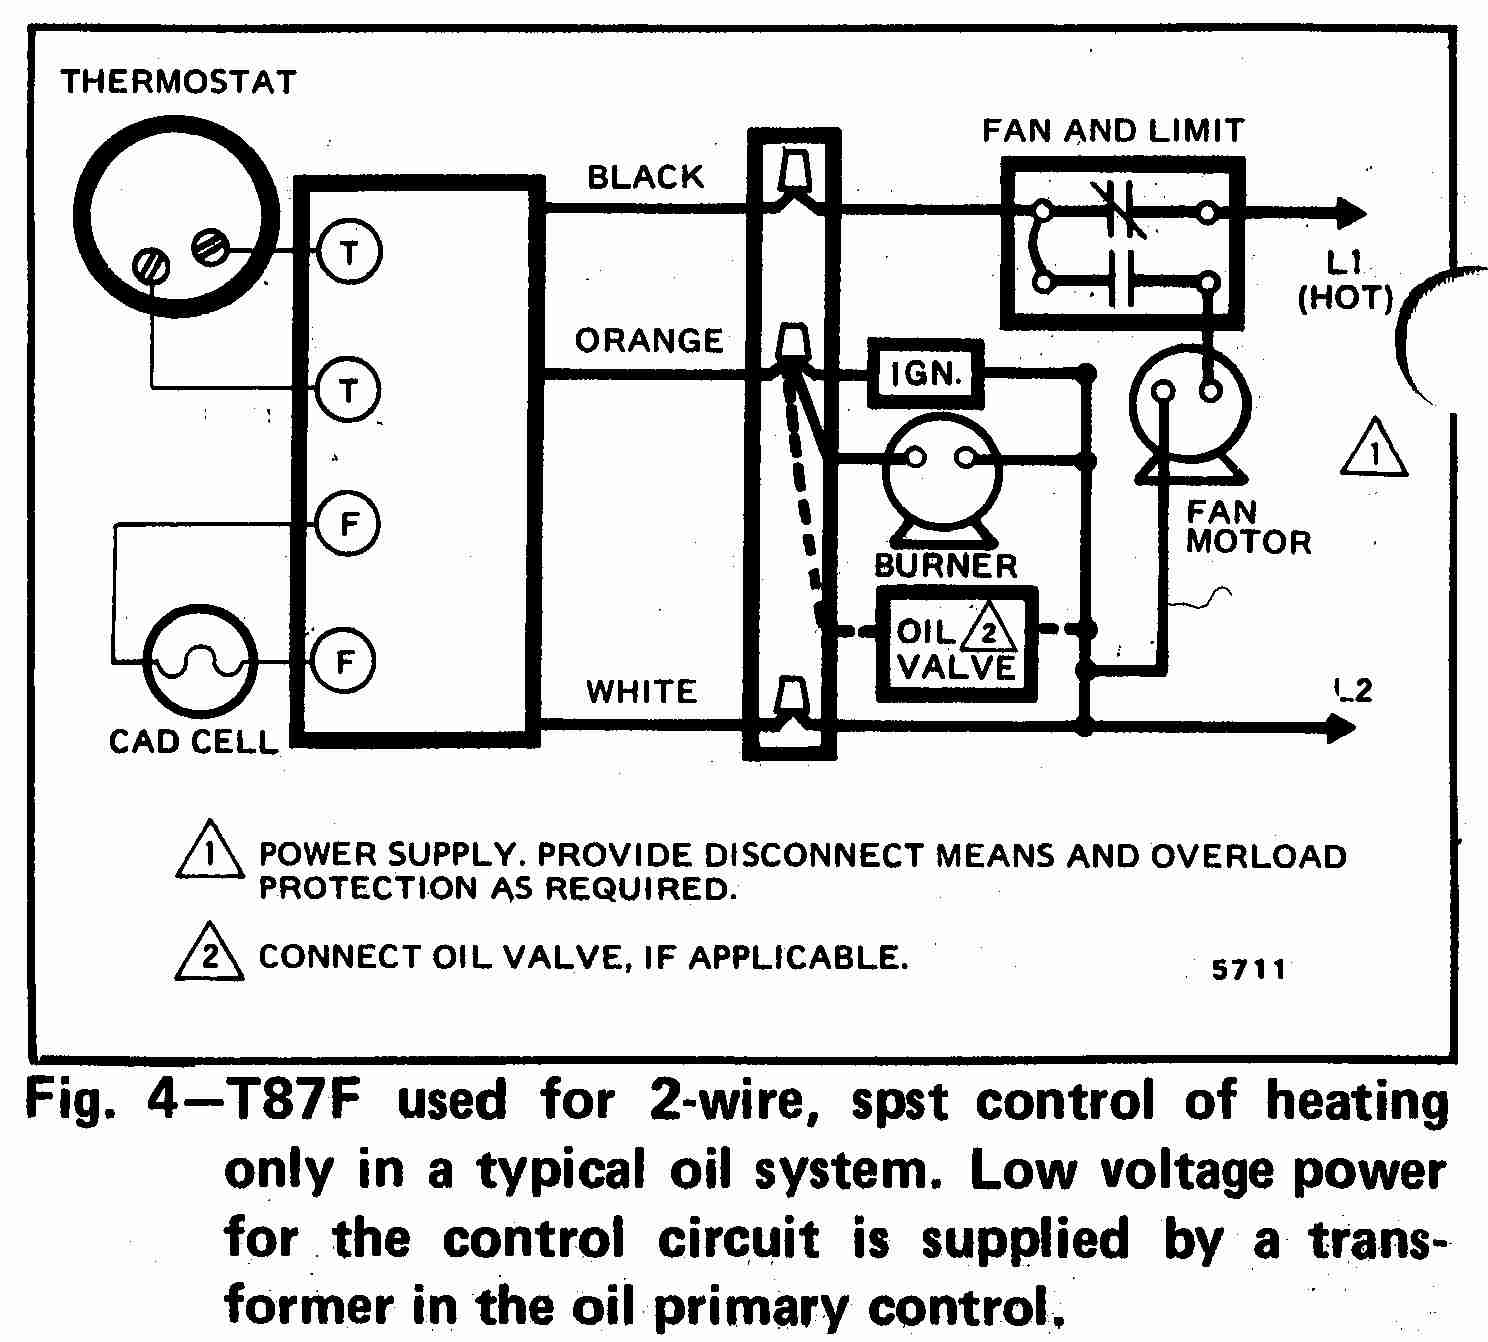 TT_T87F_0002_2W_DJF room thermostat wiring diagrams for hvac systems fan limit control wiring diagram at alyssarenee.co